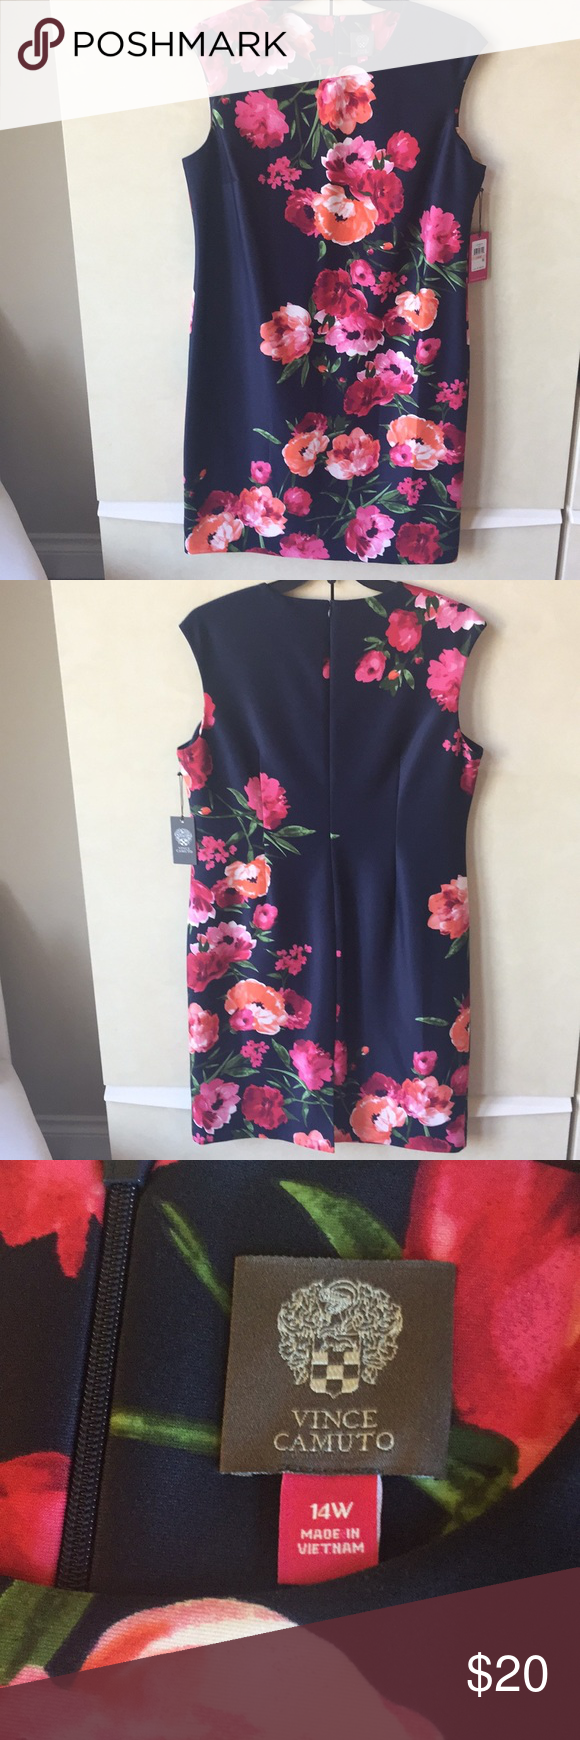 Nwt Vince Camuto Floral Dress Vince Camuto Floral Dress Floral Dress Pink Floral Dress [ 1740 x 580 Pixel ]